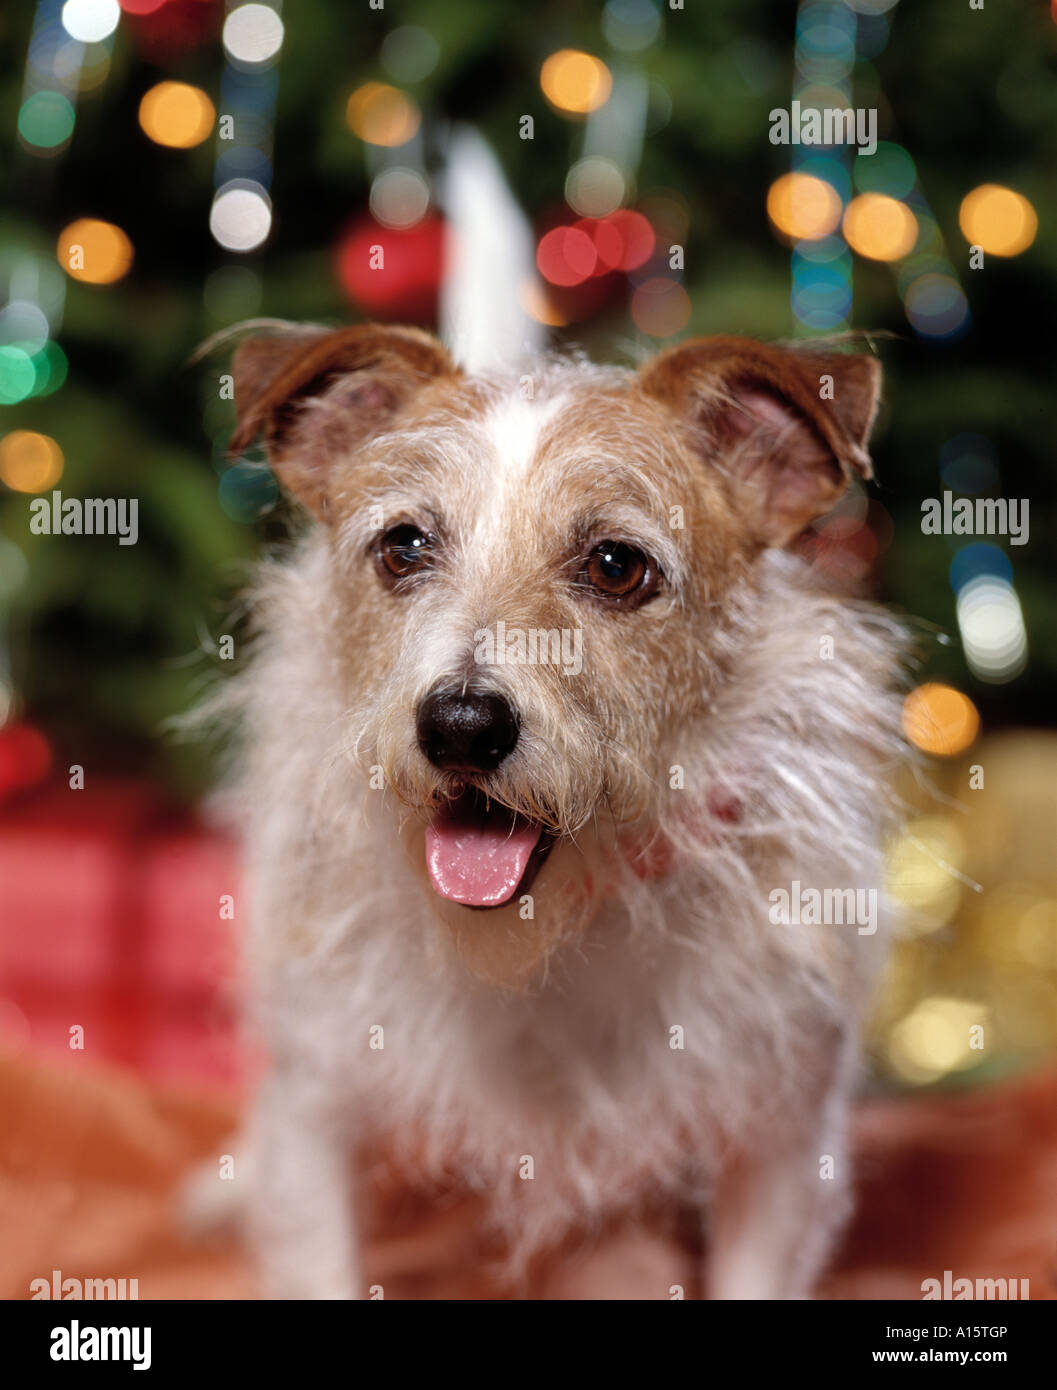 terrier dog near christmas tree - Stock Image